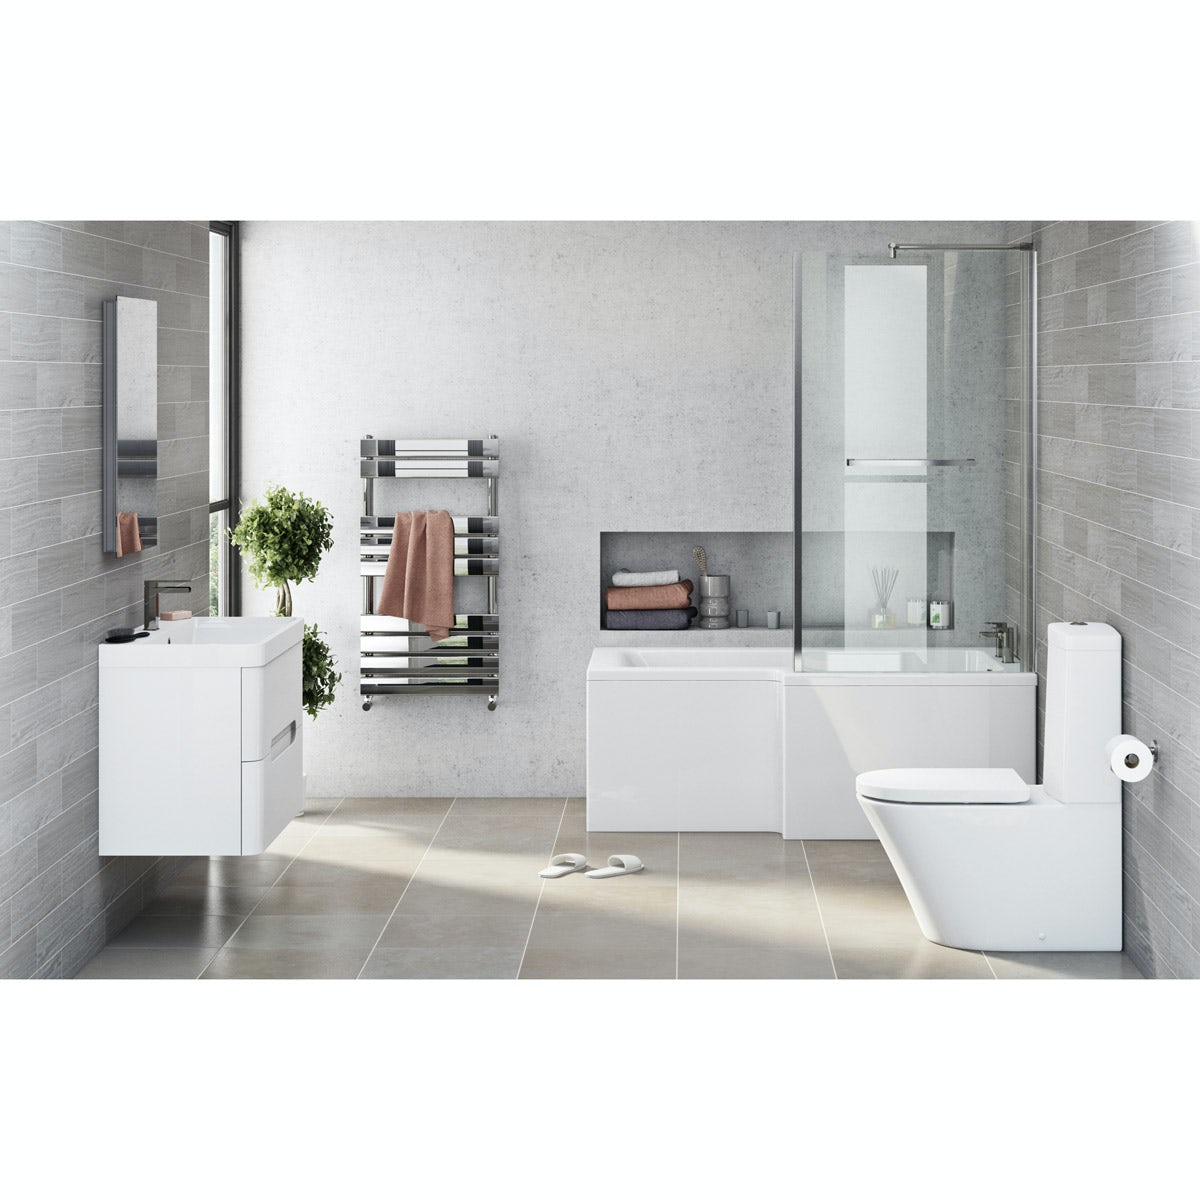 Mode Tate right hand shower bath 1700 x 850 suite with white wall hung unit 800mm